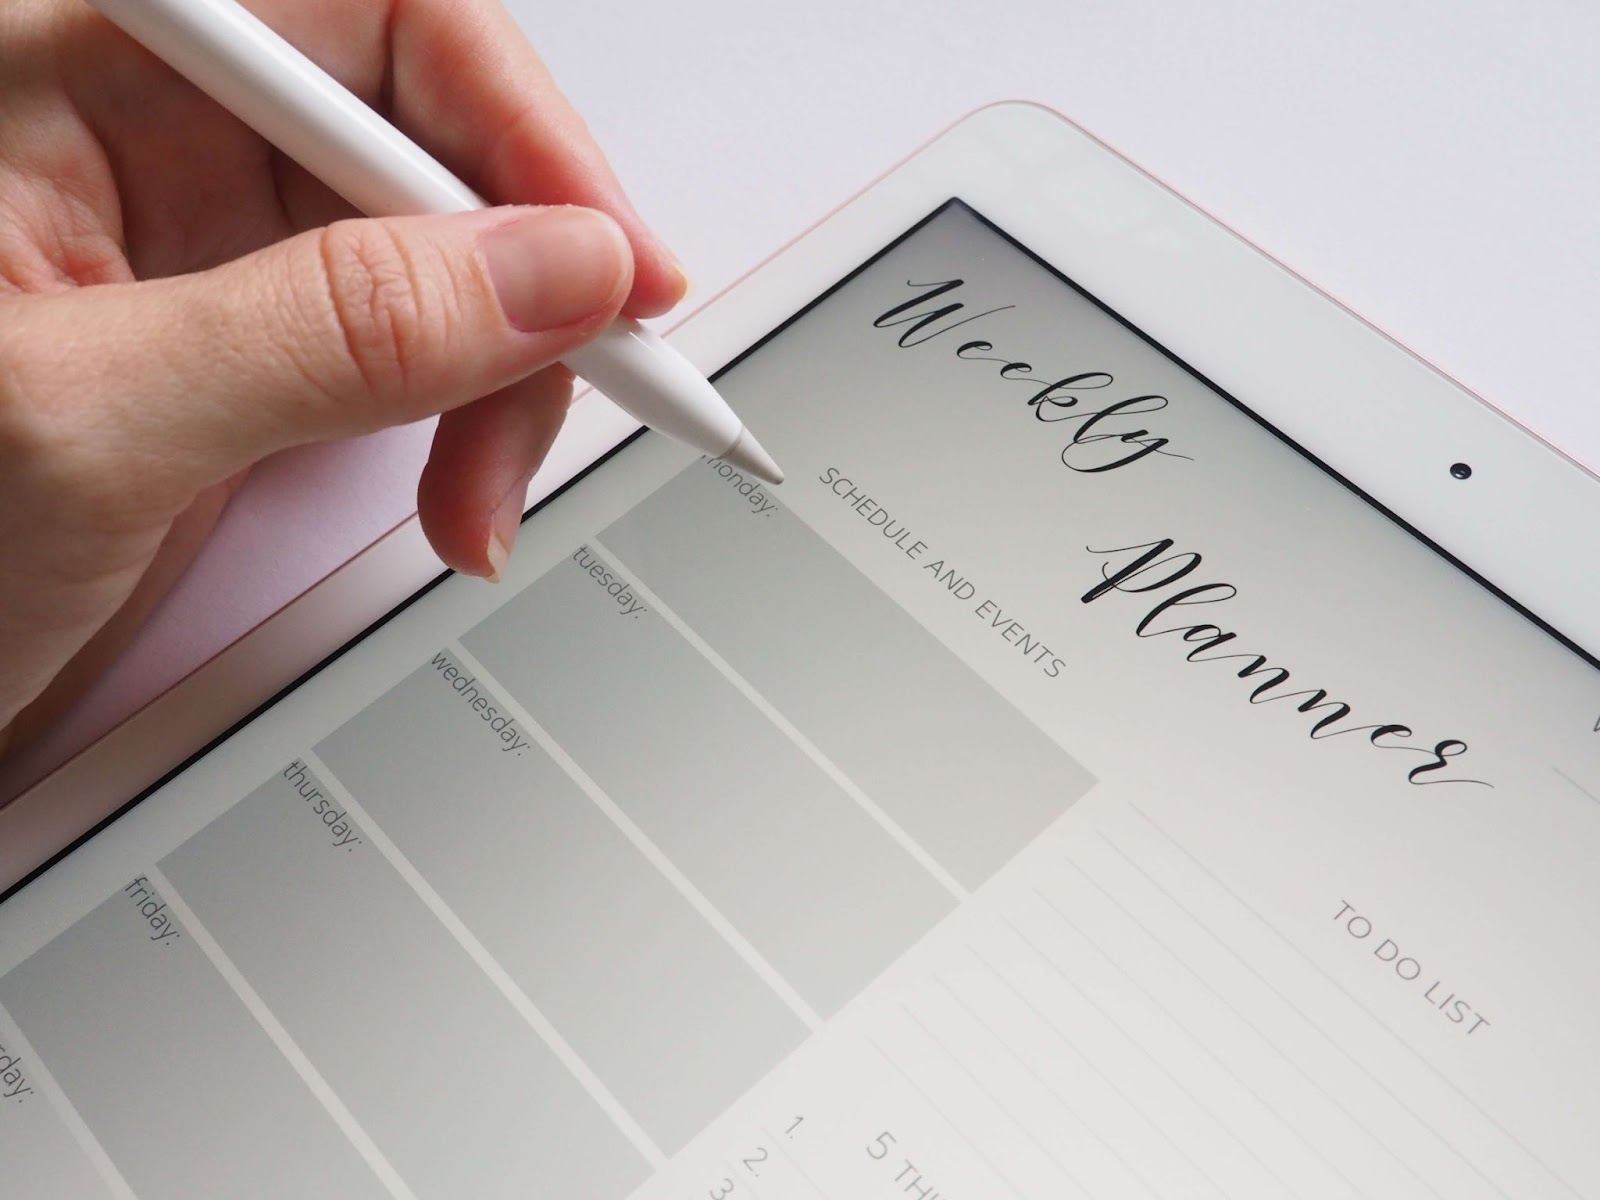 Weekly planner in a tablet